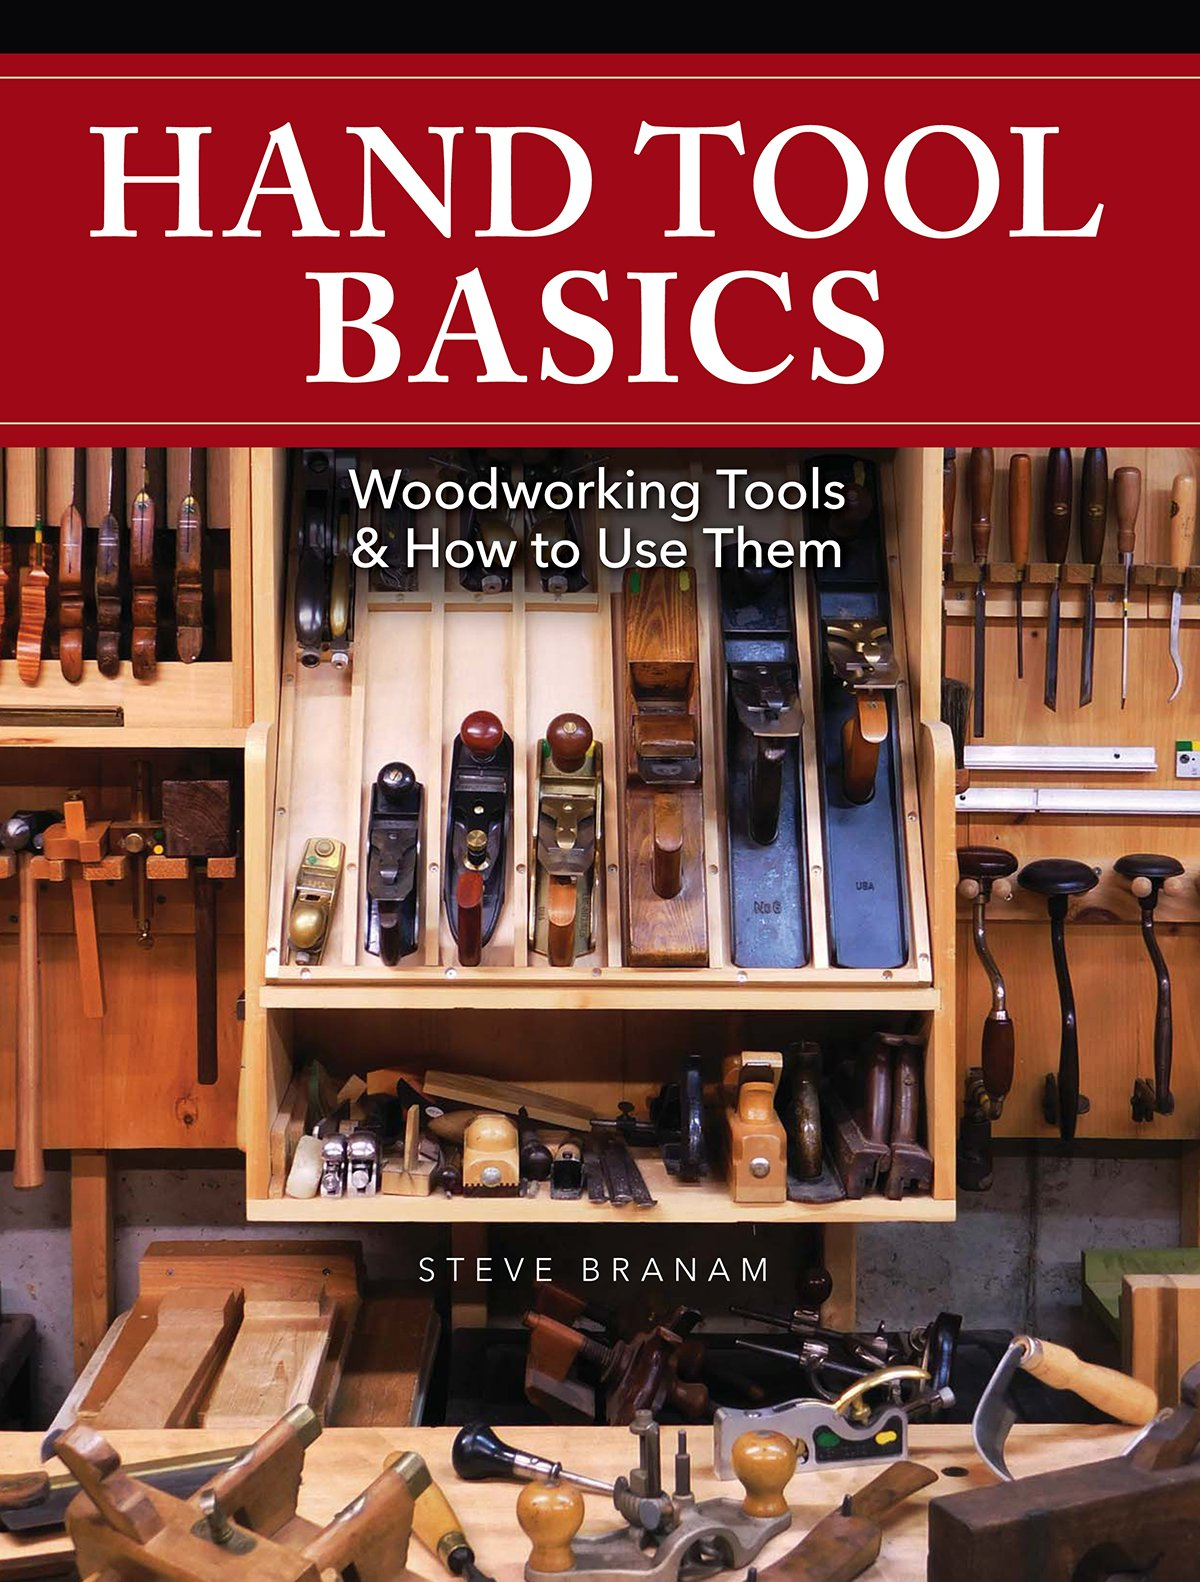 Hand Tool Basics: Woodworking Tools and How to Use Them